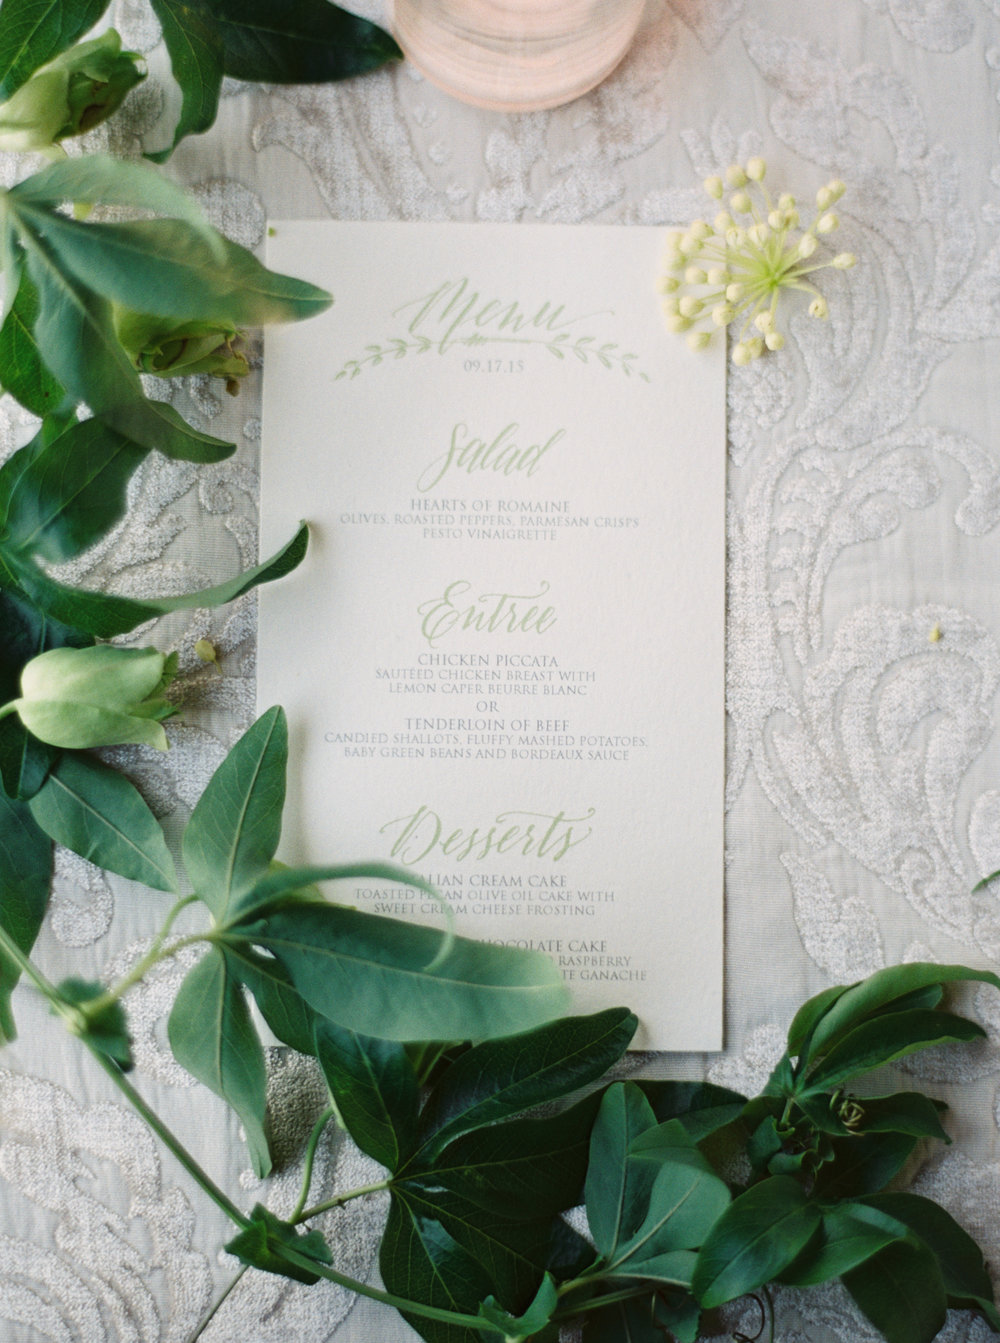 Green and white castle wedding inspiration by Columbus, Ohio wedding planner Meggie Francisco. Photo by Stephanie Brazzle.